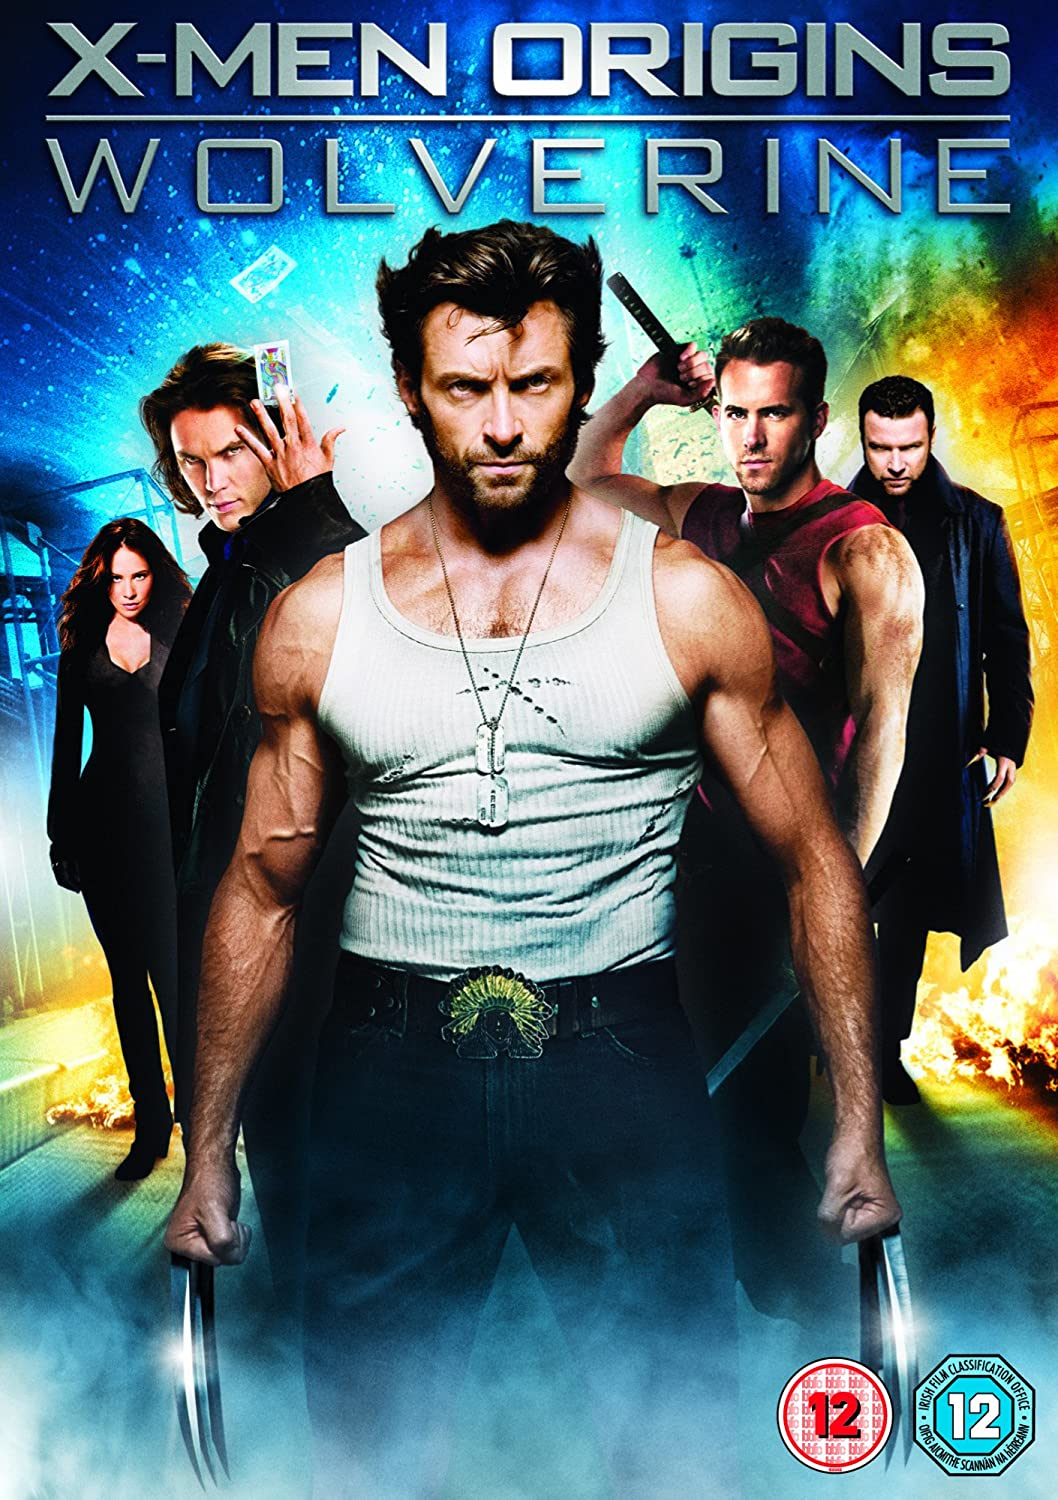 X-Men Origins Wolverine 2009 Hindi Dual Audio 720p BluRay ESubs 785MB Download